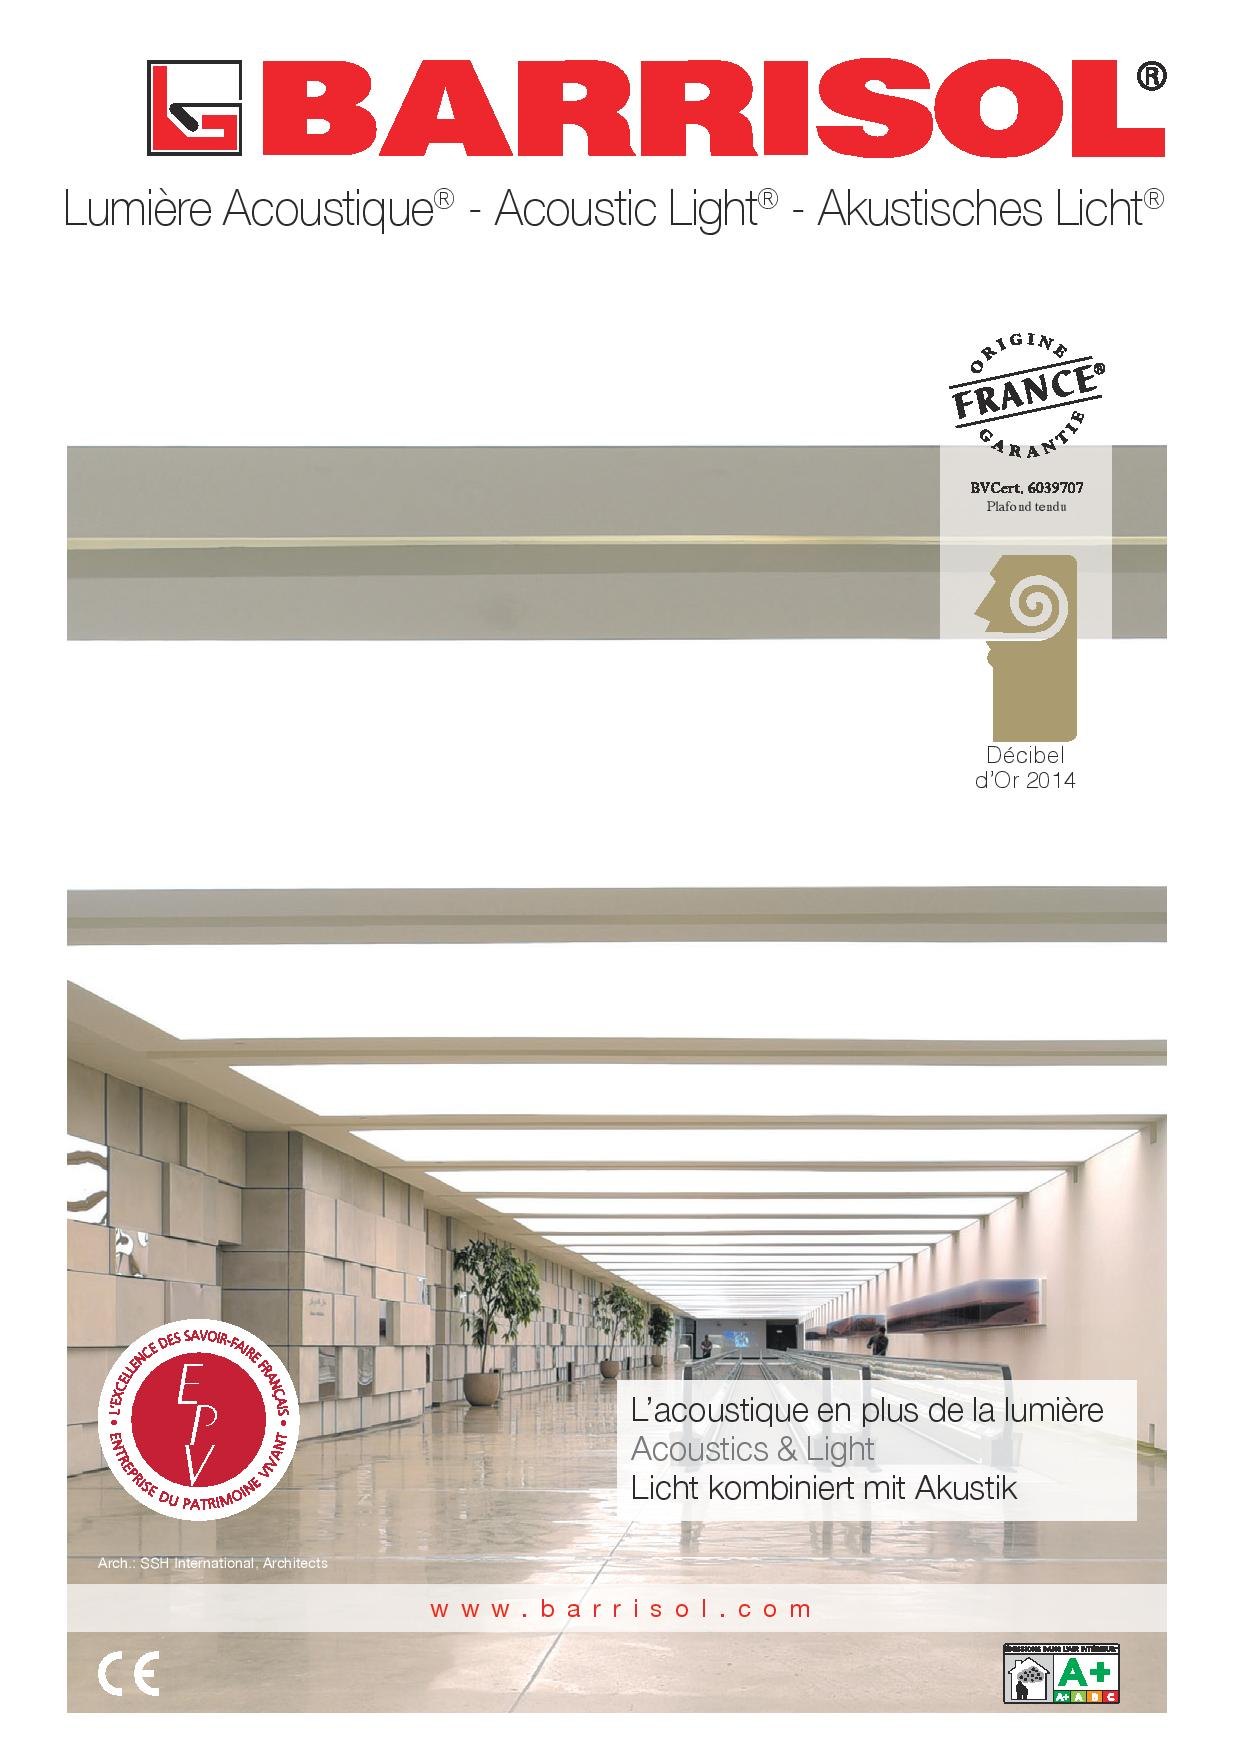 BARRISOL Acoustic light®